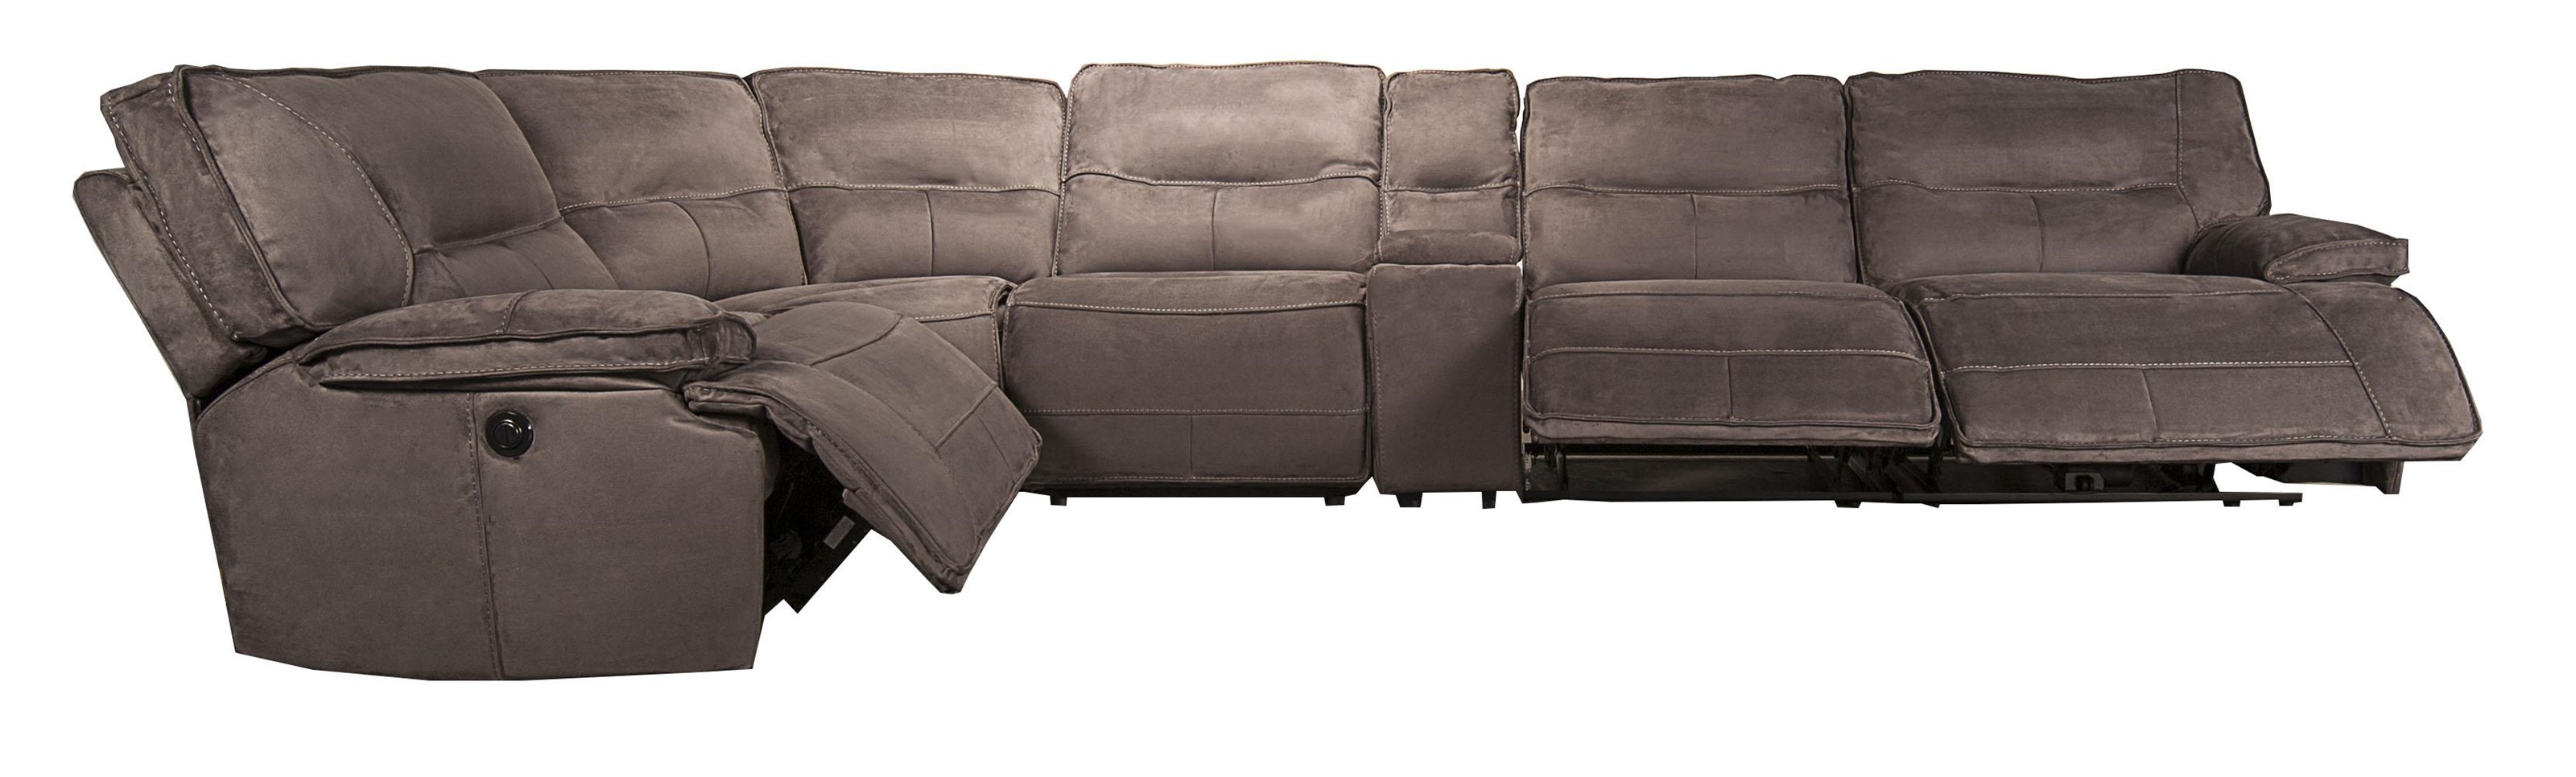 Morris Home Furnishings Theodore Theodore 6-Piece Pella suede Power Reclining - Item Number: 134844997